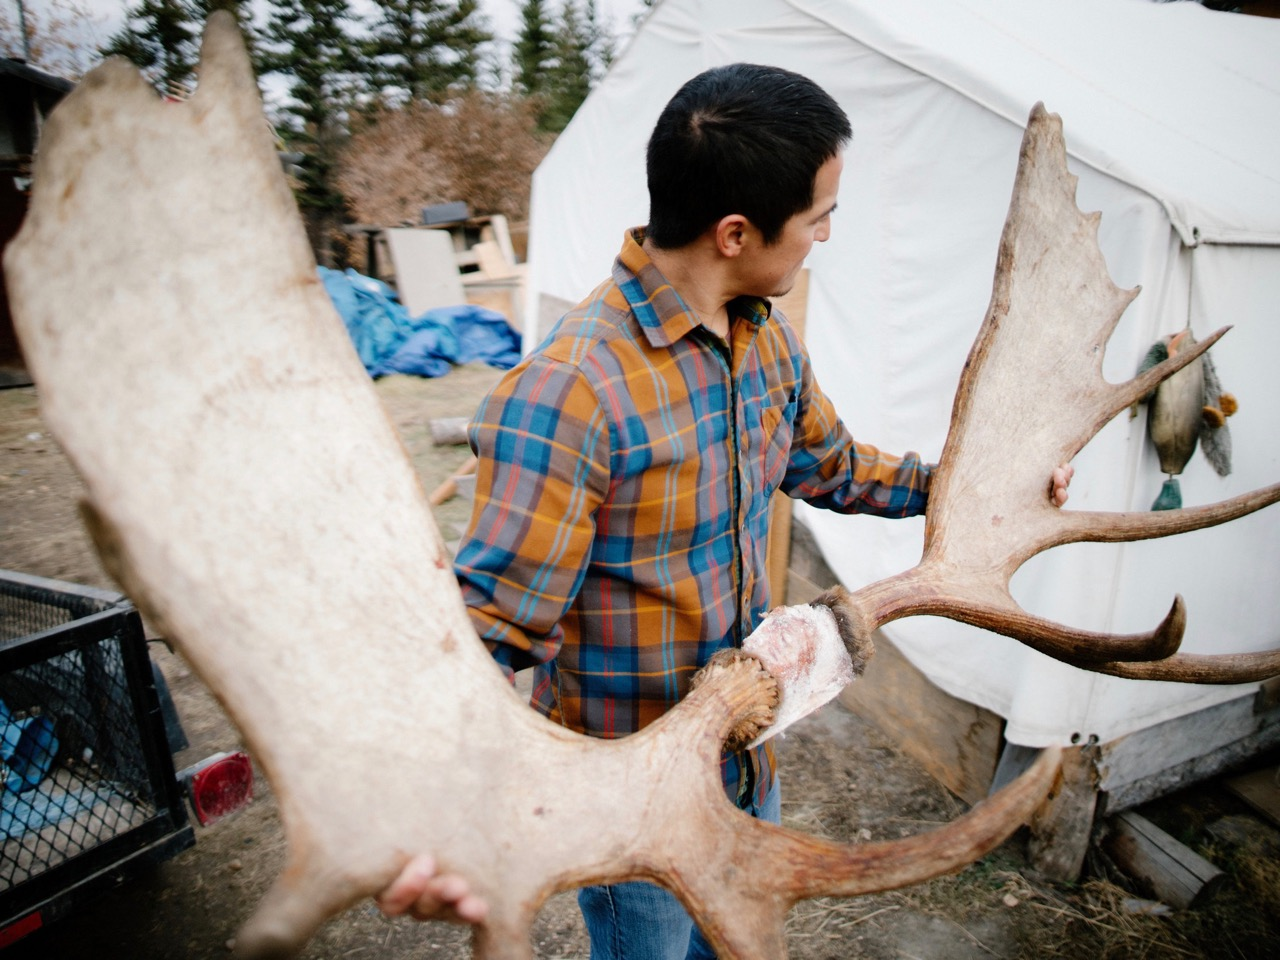 Alaska Natives on opposite sides of energy development in Arctic refuge